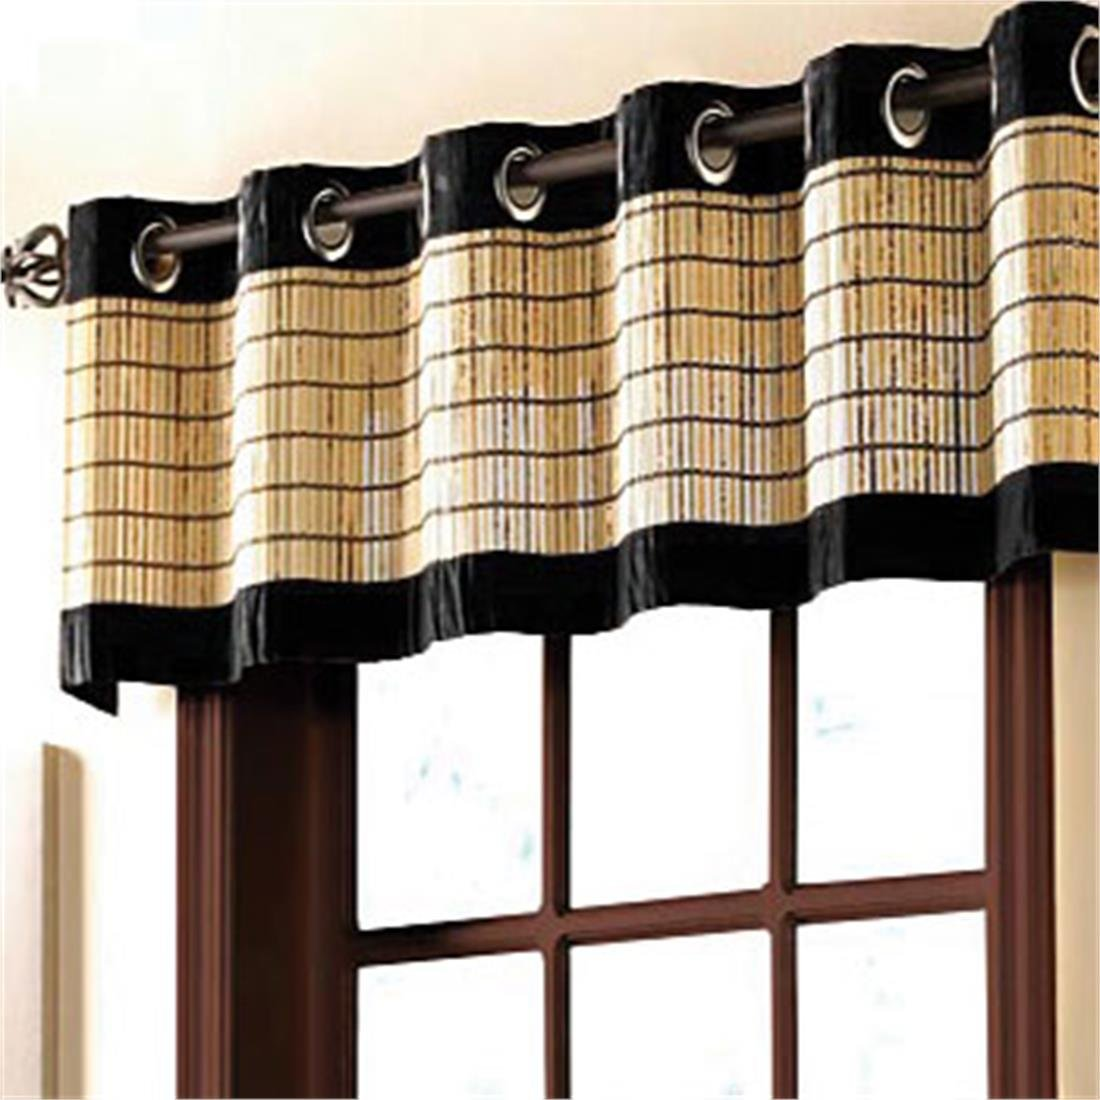 Hung on oil rubbed bronze curtain rod with bamboo roman shades - Amazon Com Brylanehome Bamboo Grommet Valance 60 Wx12 L Mahogany Brown Home Kitchen